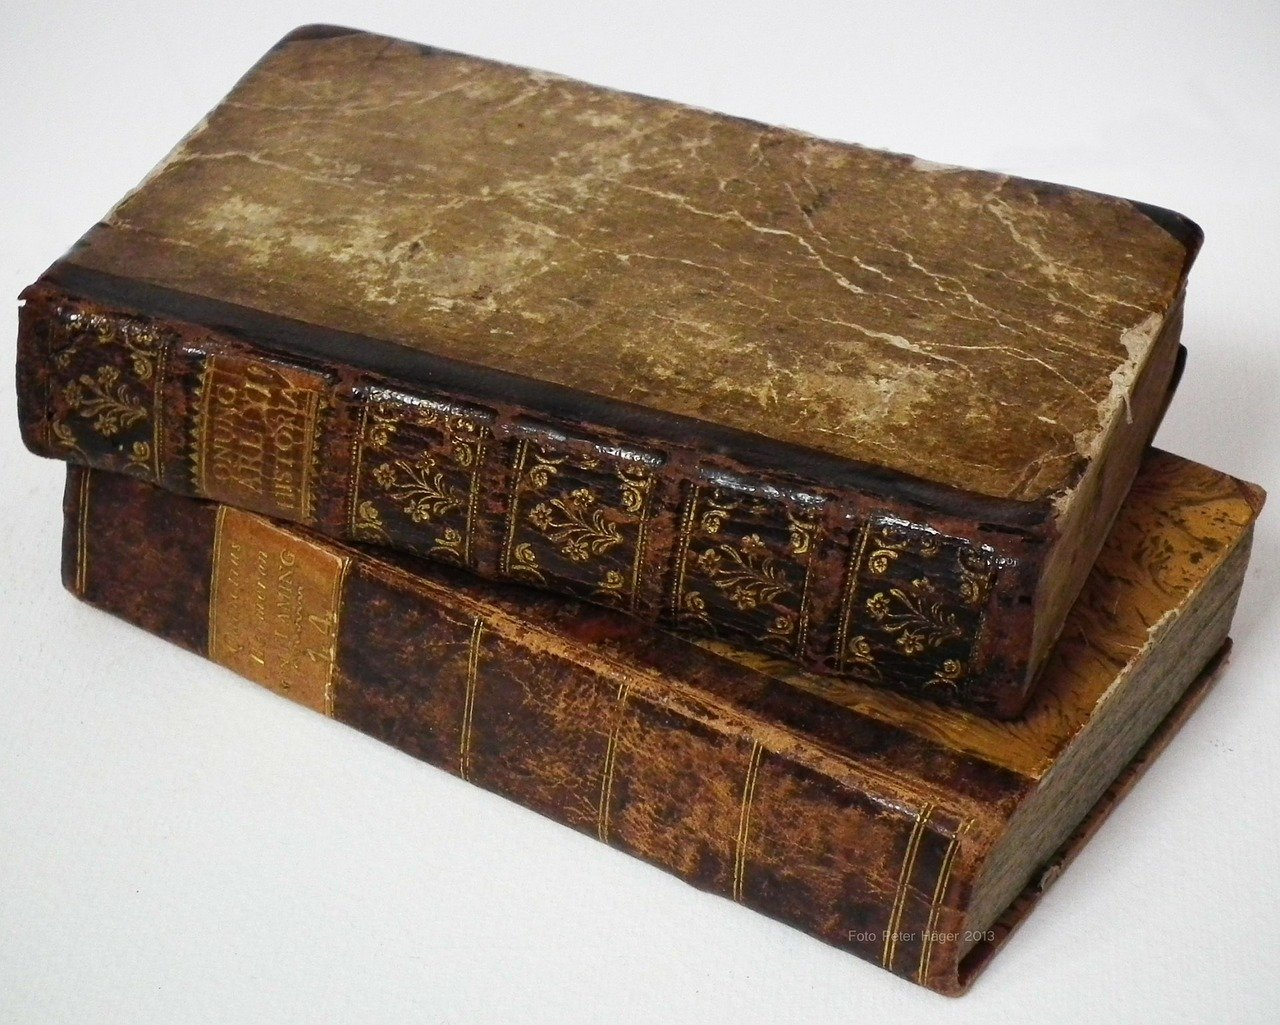 Huge collection of rare books left to Devon charity shop